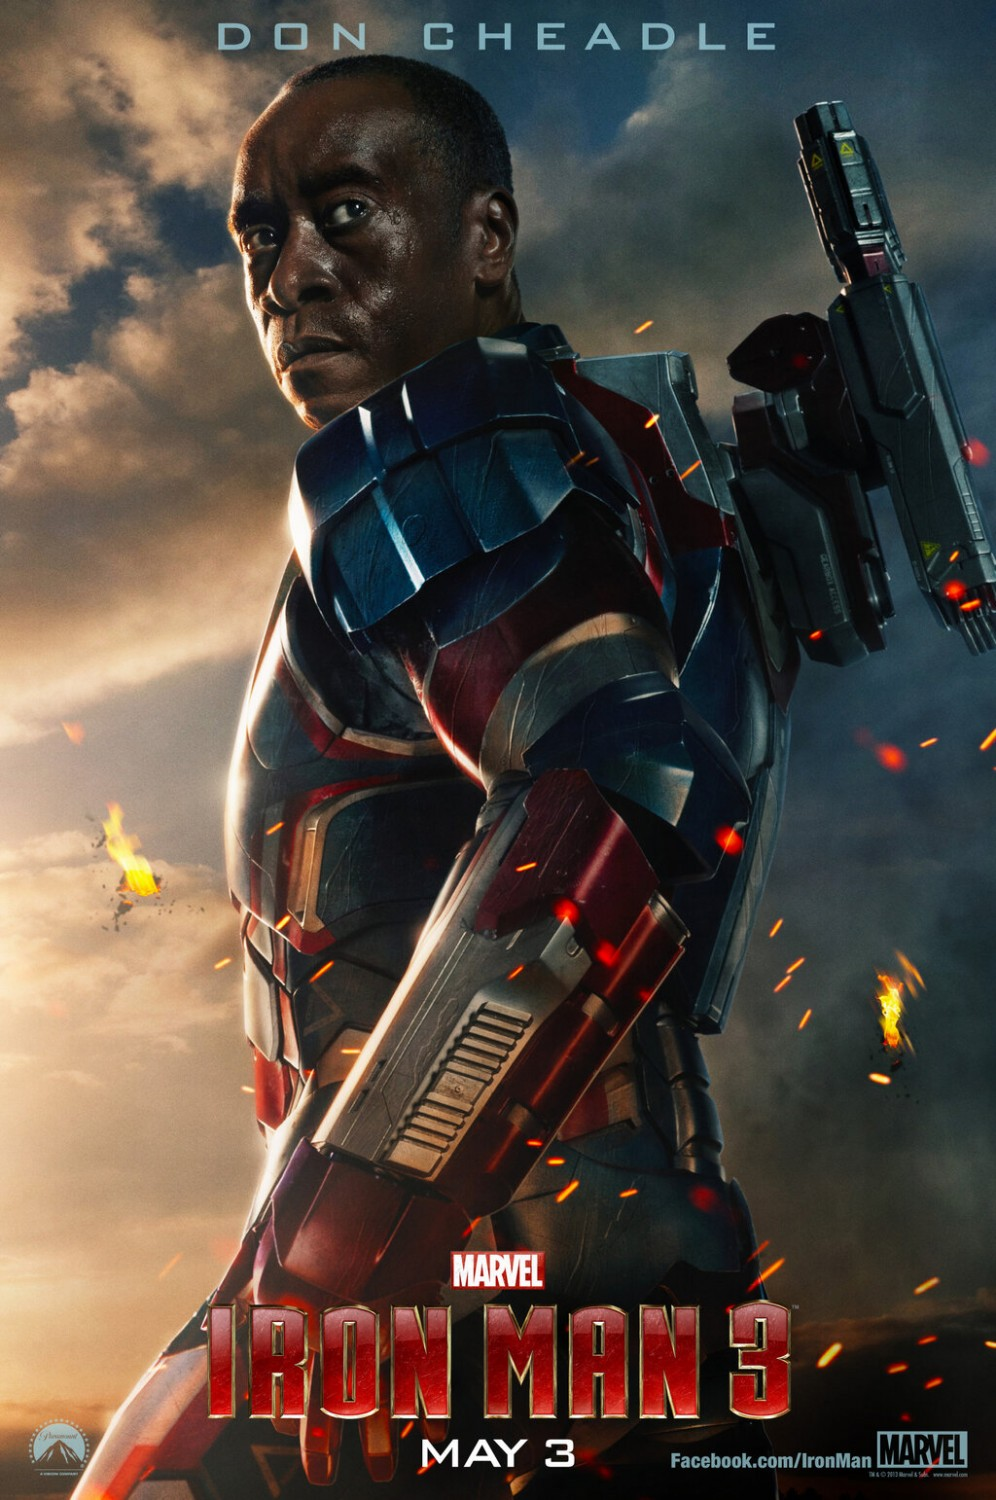 New iron man 3 character posters pop up online updated with tony iron man 3 poster 003 voltagebd Gallery